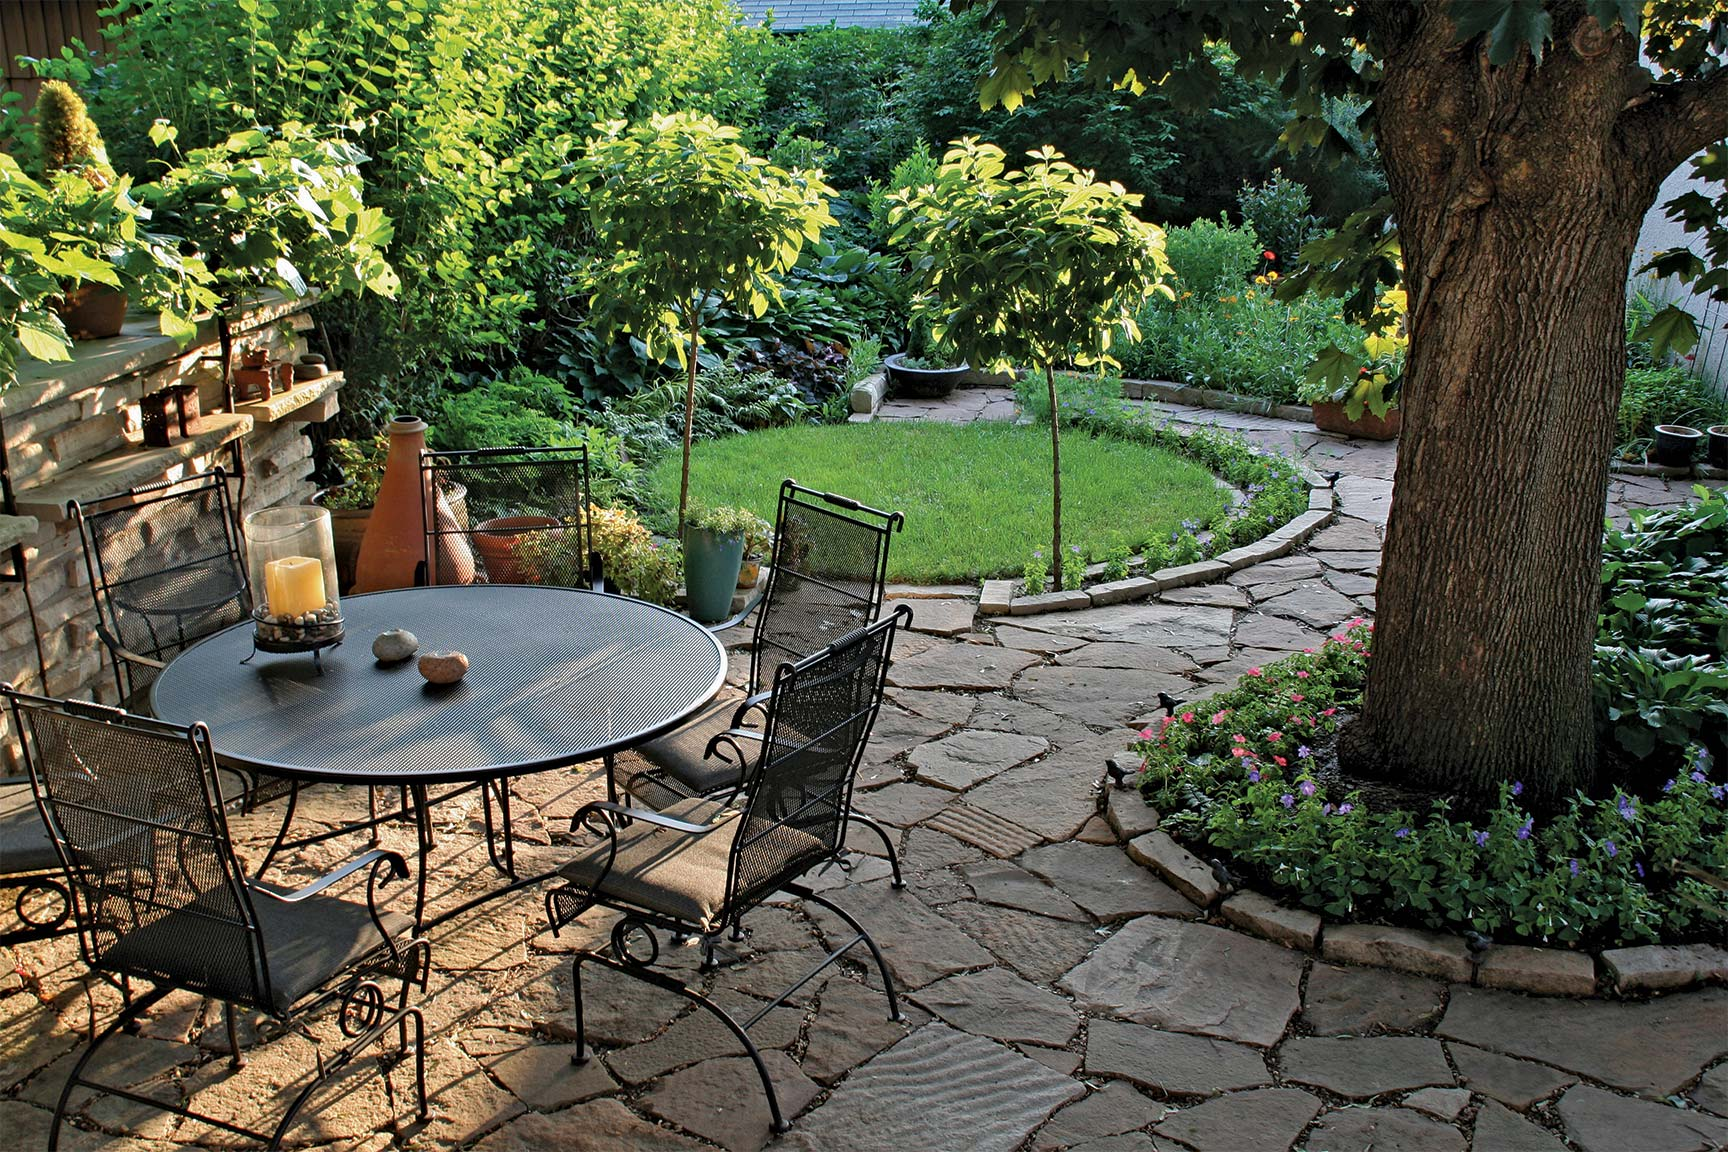 From tall grasses and vegetable gardens to swing sets and patio furniture, backyards offer dozens of hot spots for pests to seek harborage.